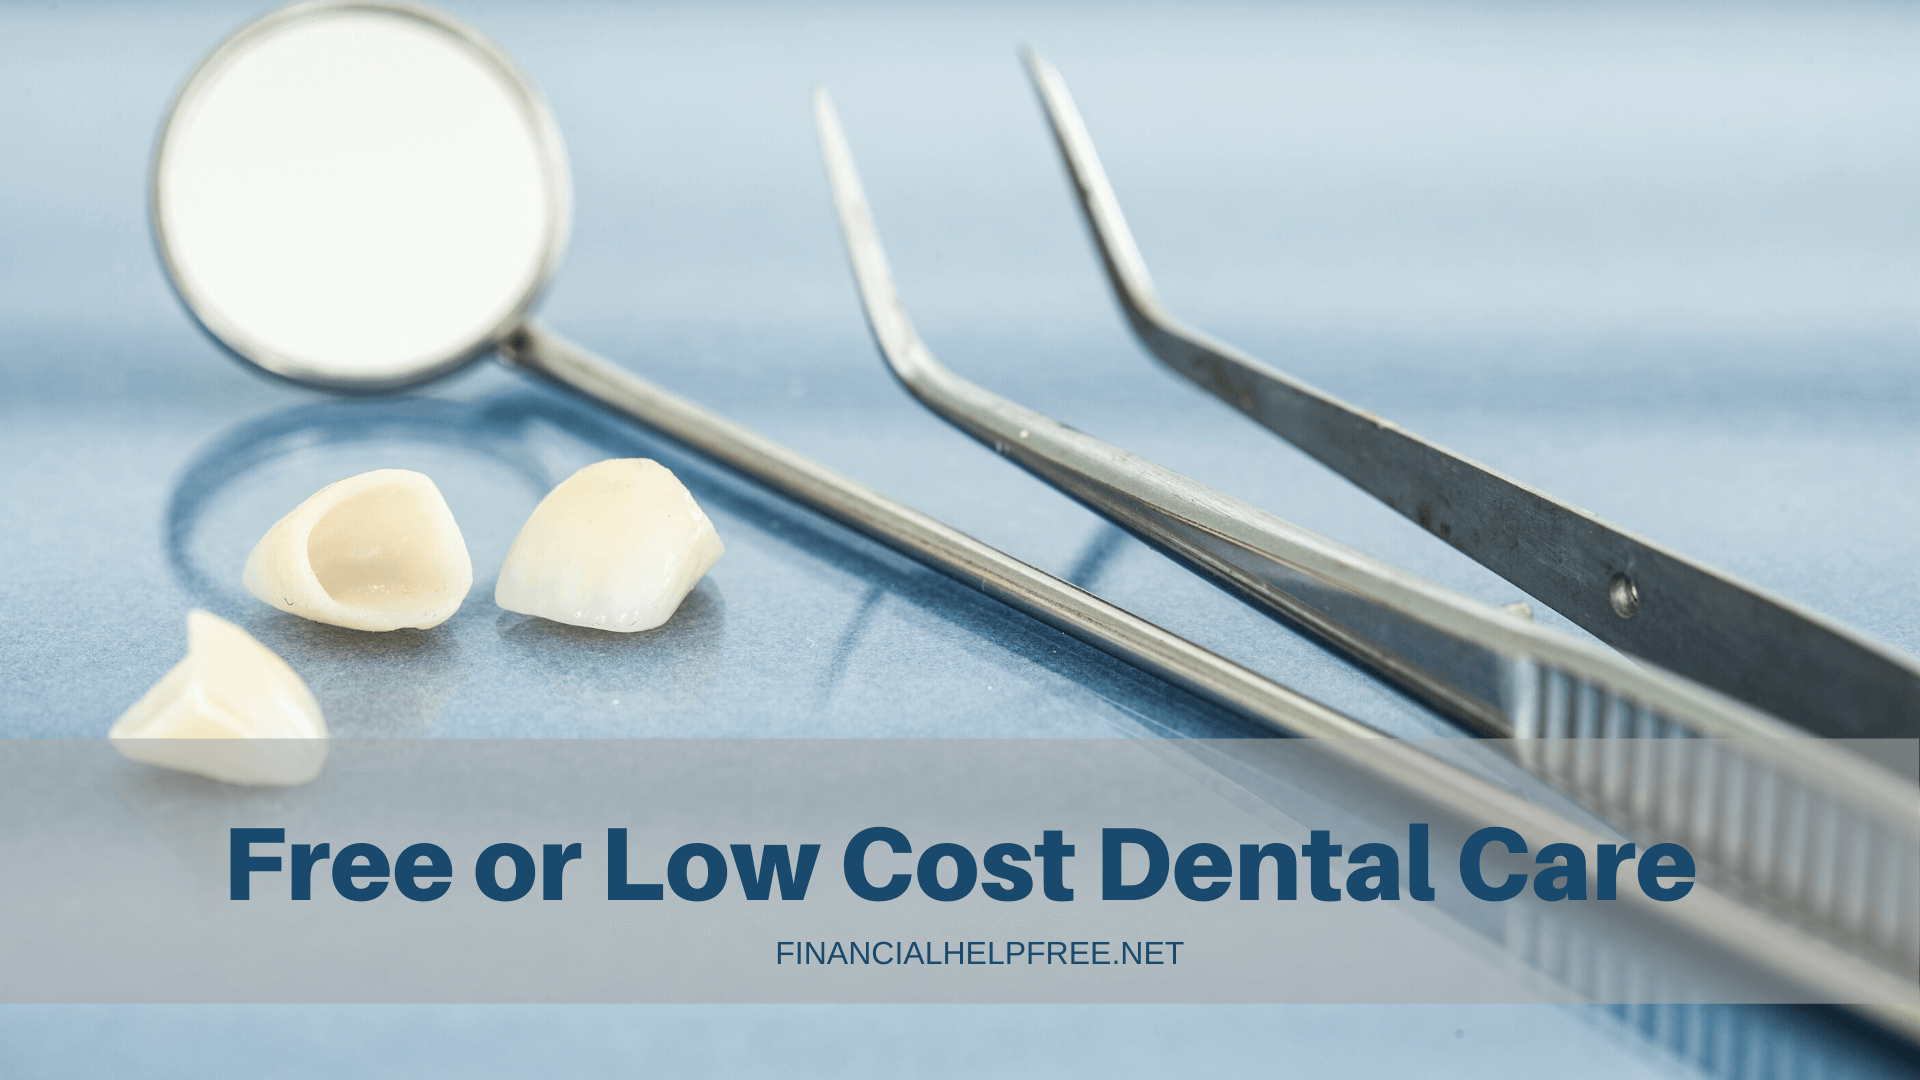 Free or Low Cost Dental Care